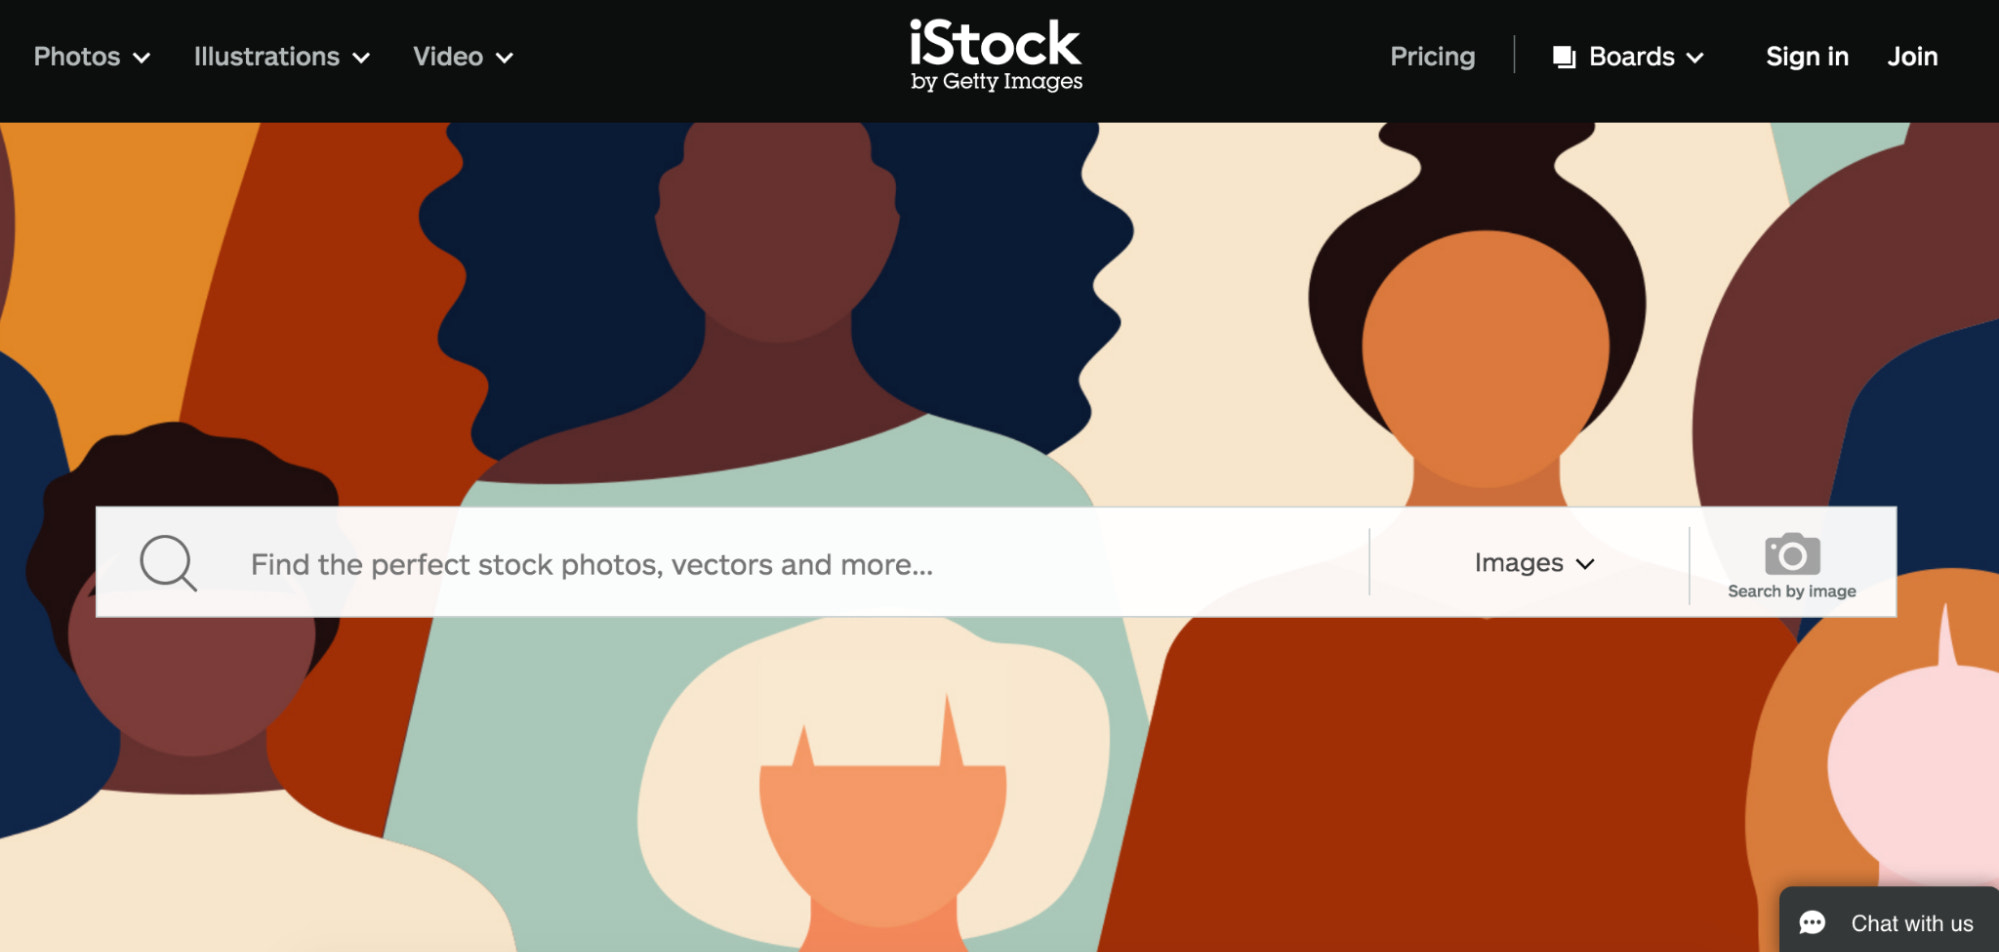 iStock free stock photo site homepage